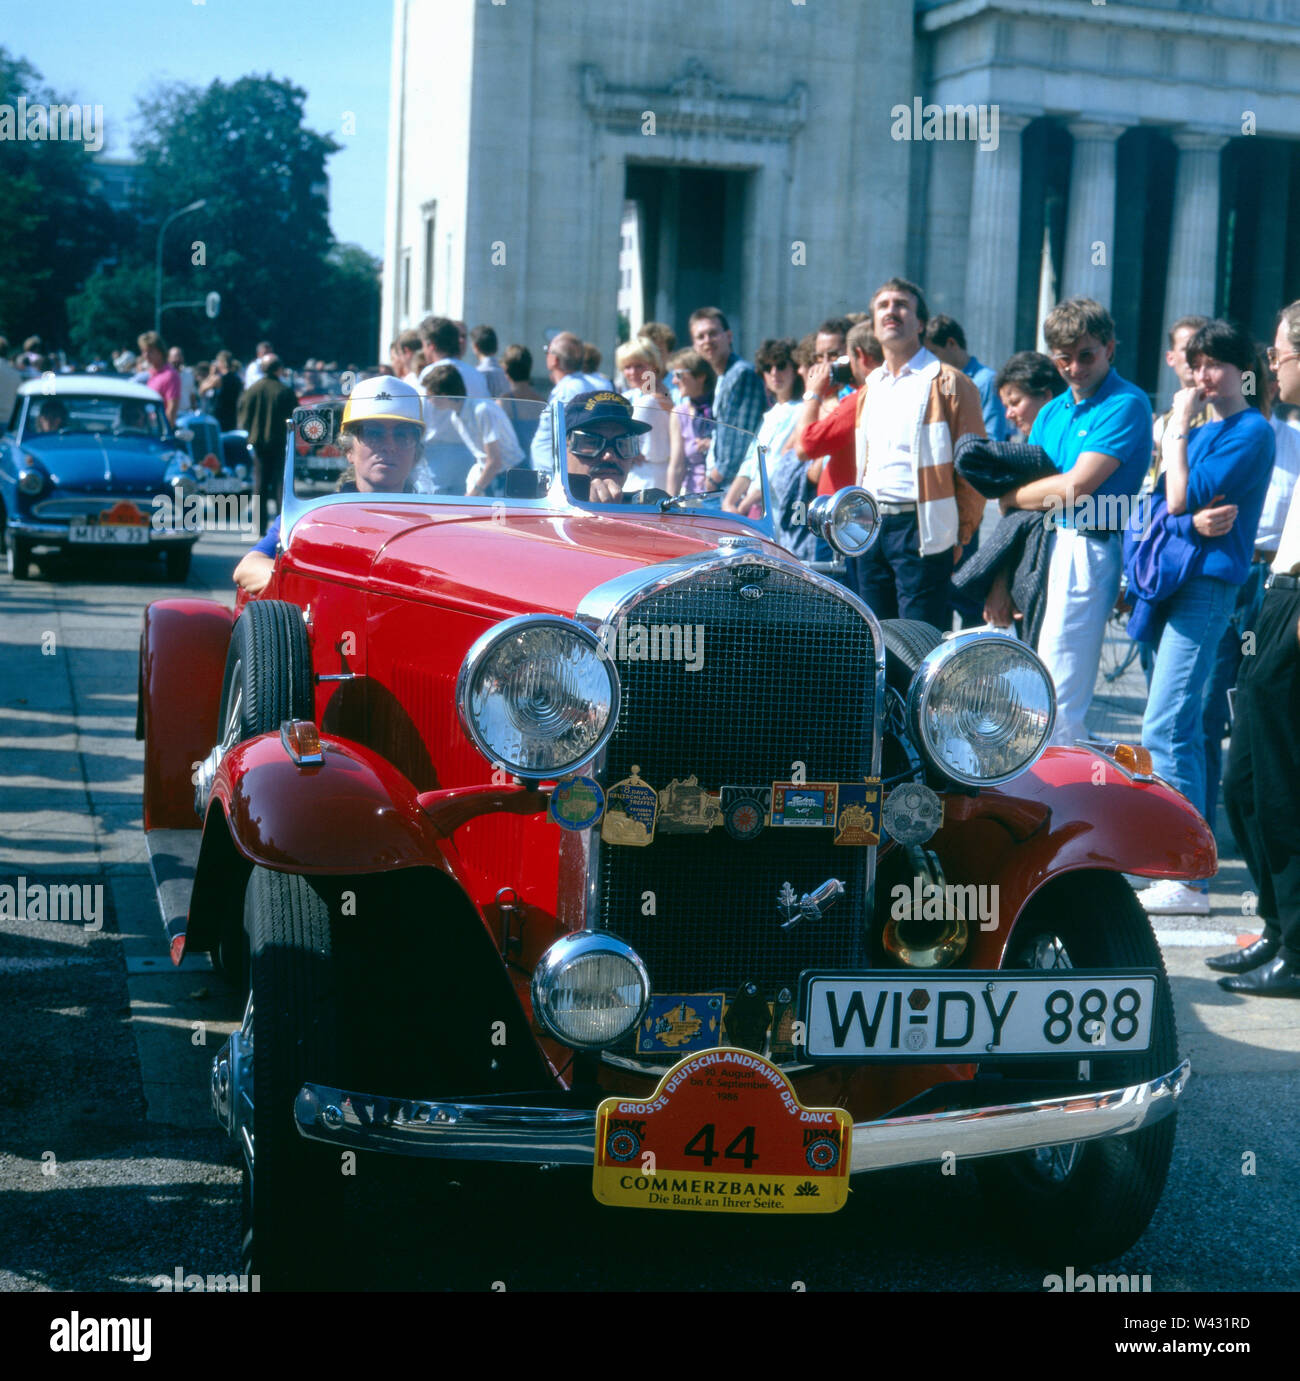 Ein Opel 1,8 Lt. fährt durch die Münchner Innenstadt im Zuge einer Oldtimershow Ende der 1980er Jahre. An Opel 1.8 Lt. drives through the center of Munich in the wake of a vintage car show in the late 1980s. - Stock Image